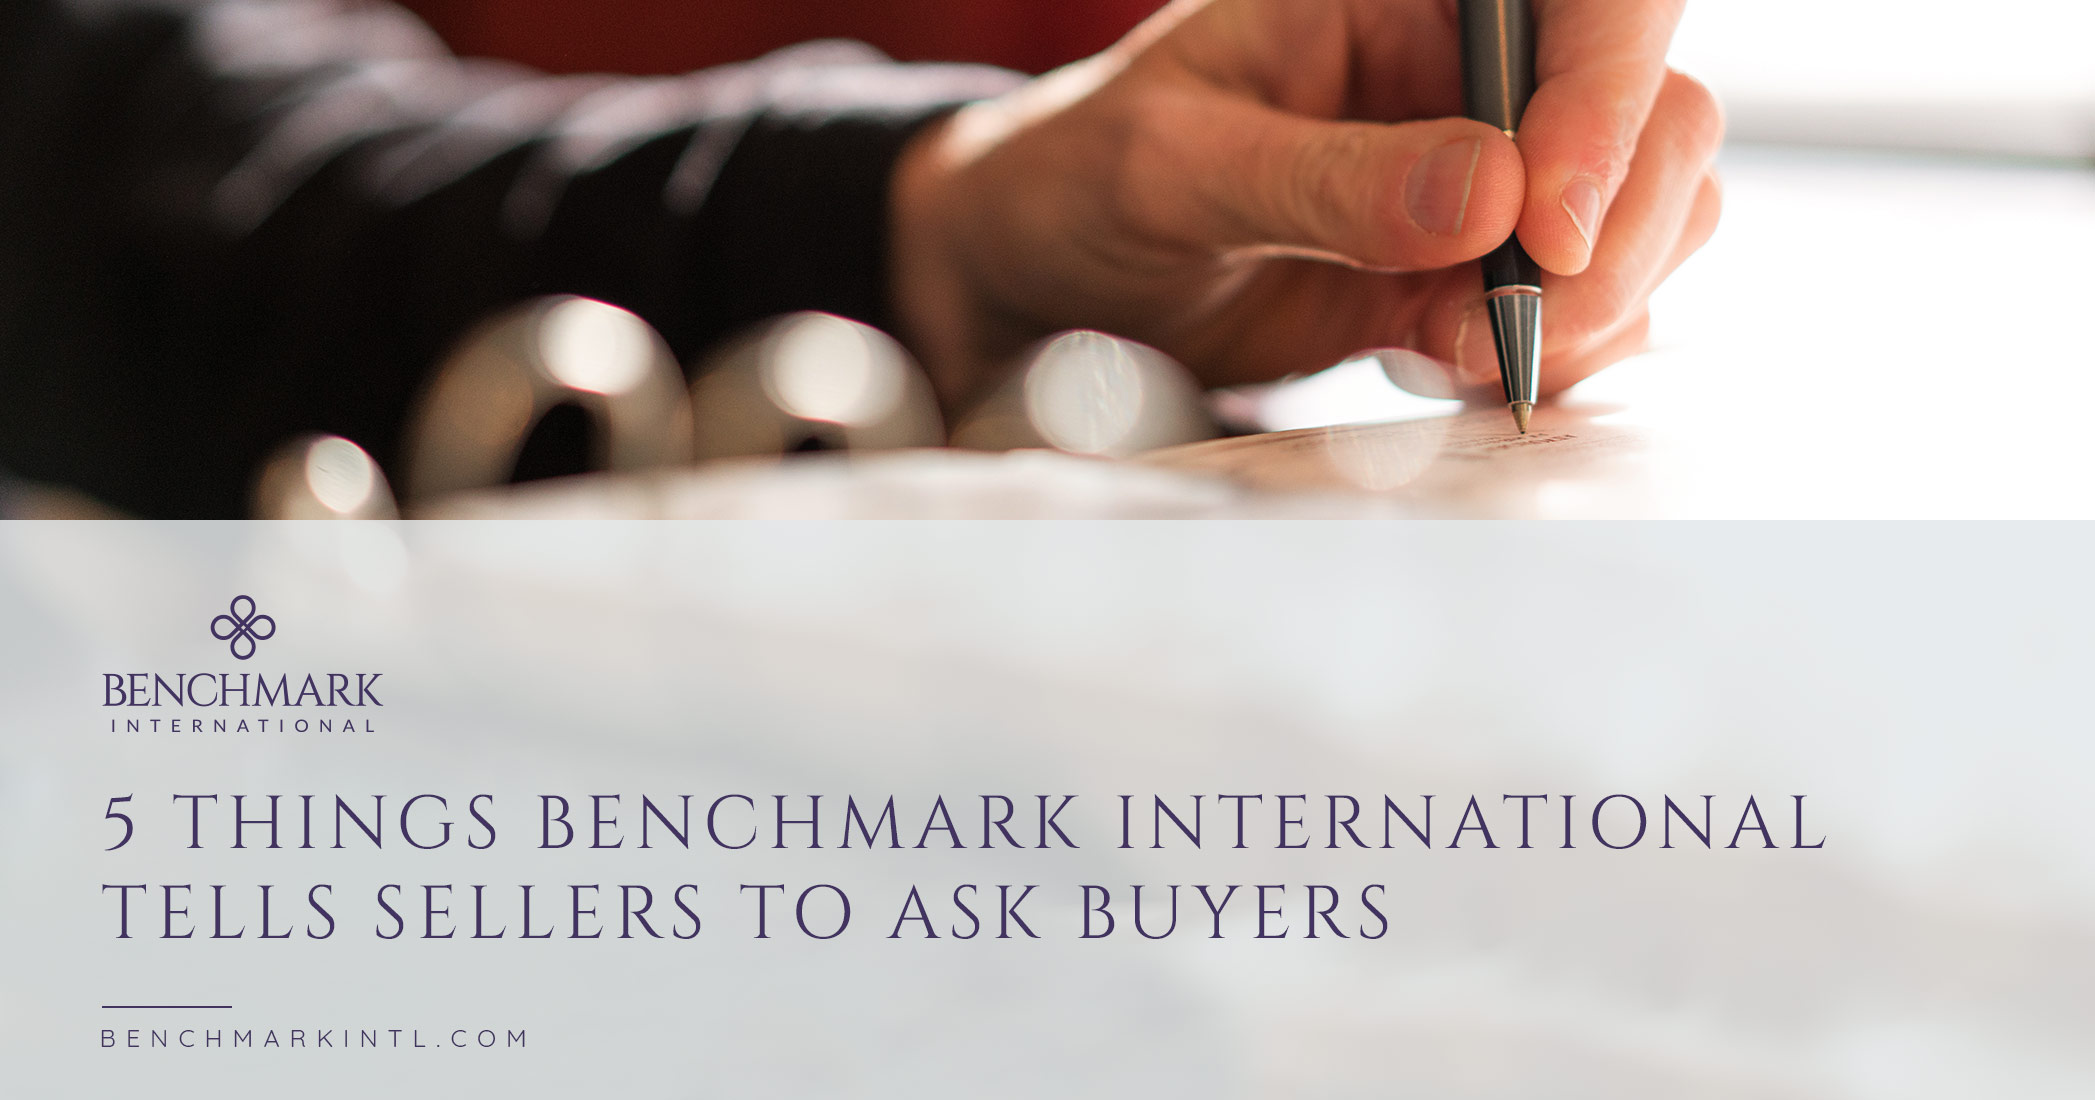 5 Things Benchmark International Tells Sellers to Ask Buyers